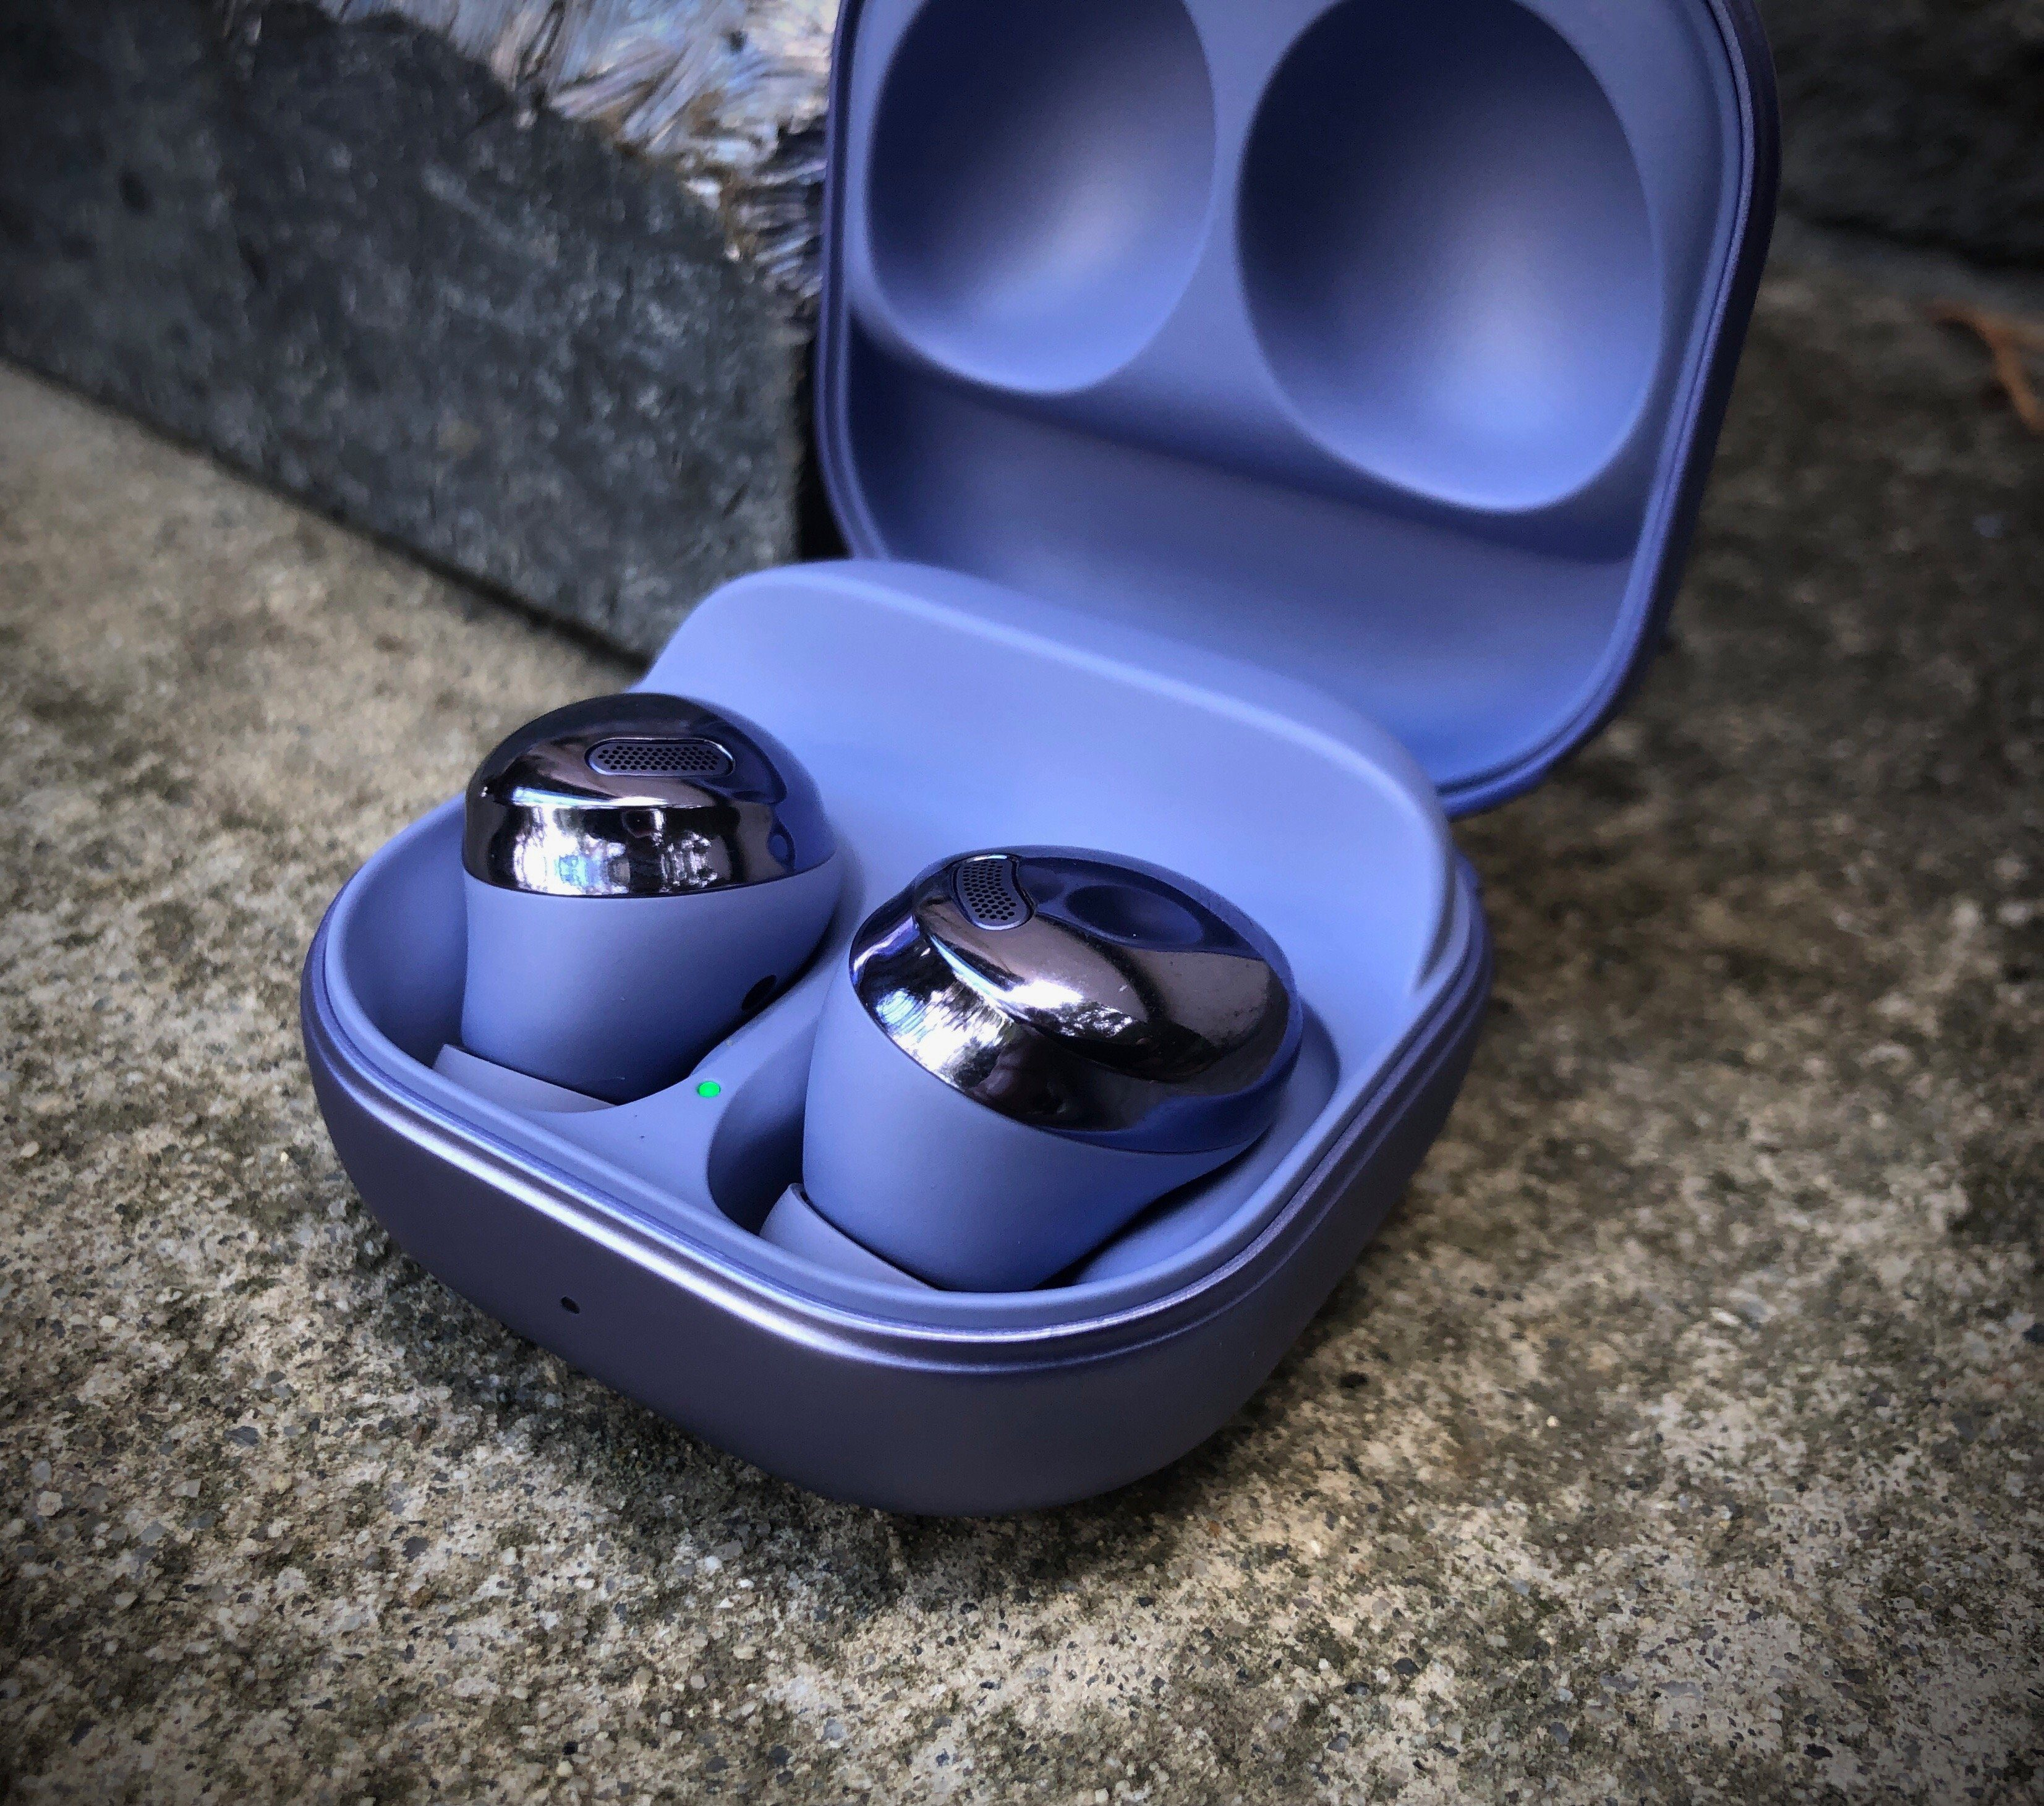 Samsung Galaxy Buds Pro Review - Audiophile Approved True Wireless In-Ear Headphones?